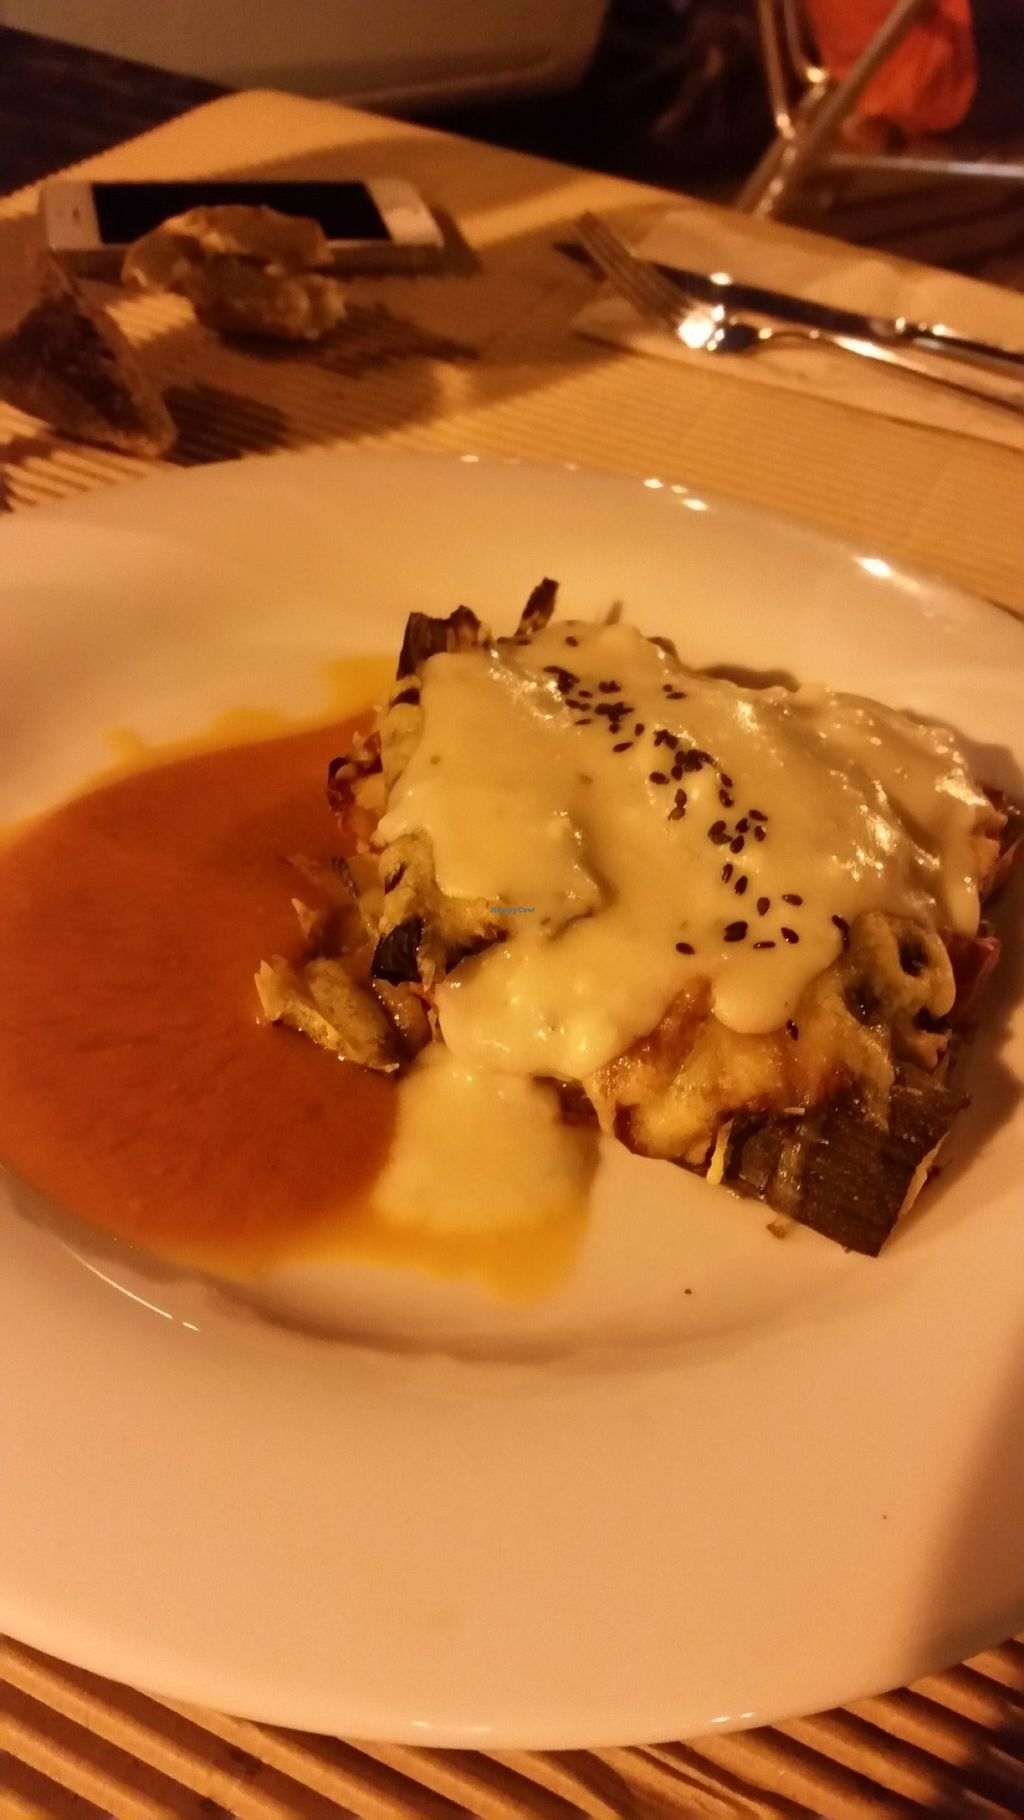 """Photo of Km.0  by <a href=""""/members/profile/nicolenoe"""">nicolenoe</a> <br/>They call it vegan pie but i think it´s lasagna (Bechamel sauce) and it´s really good <br/> July 23, 2016  - <a href='/contact/abuse/image/52139/161779'>Report</a>"""